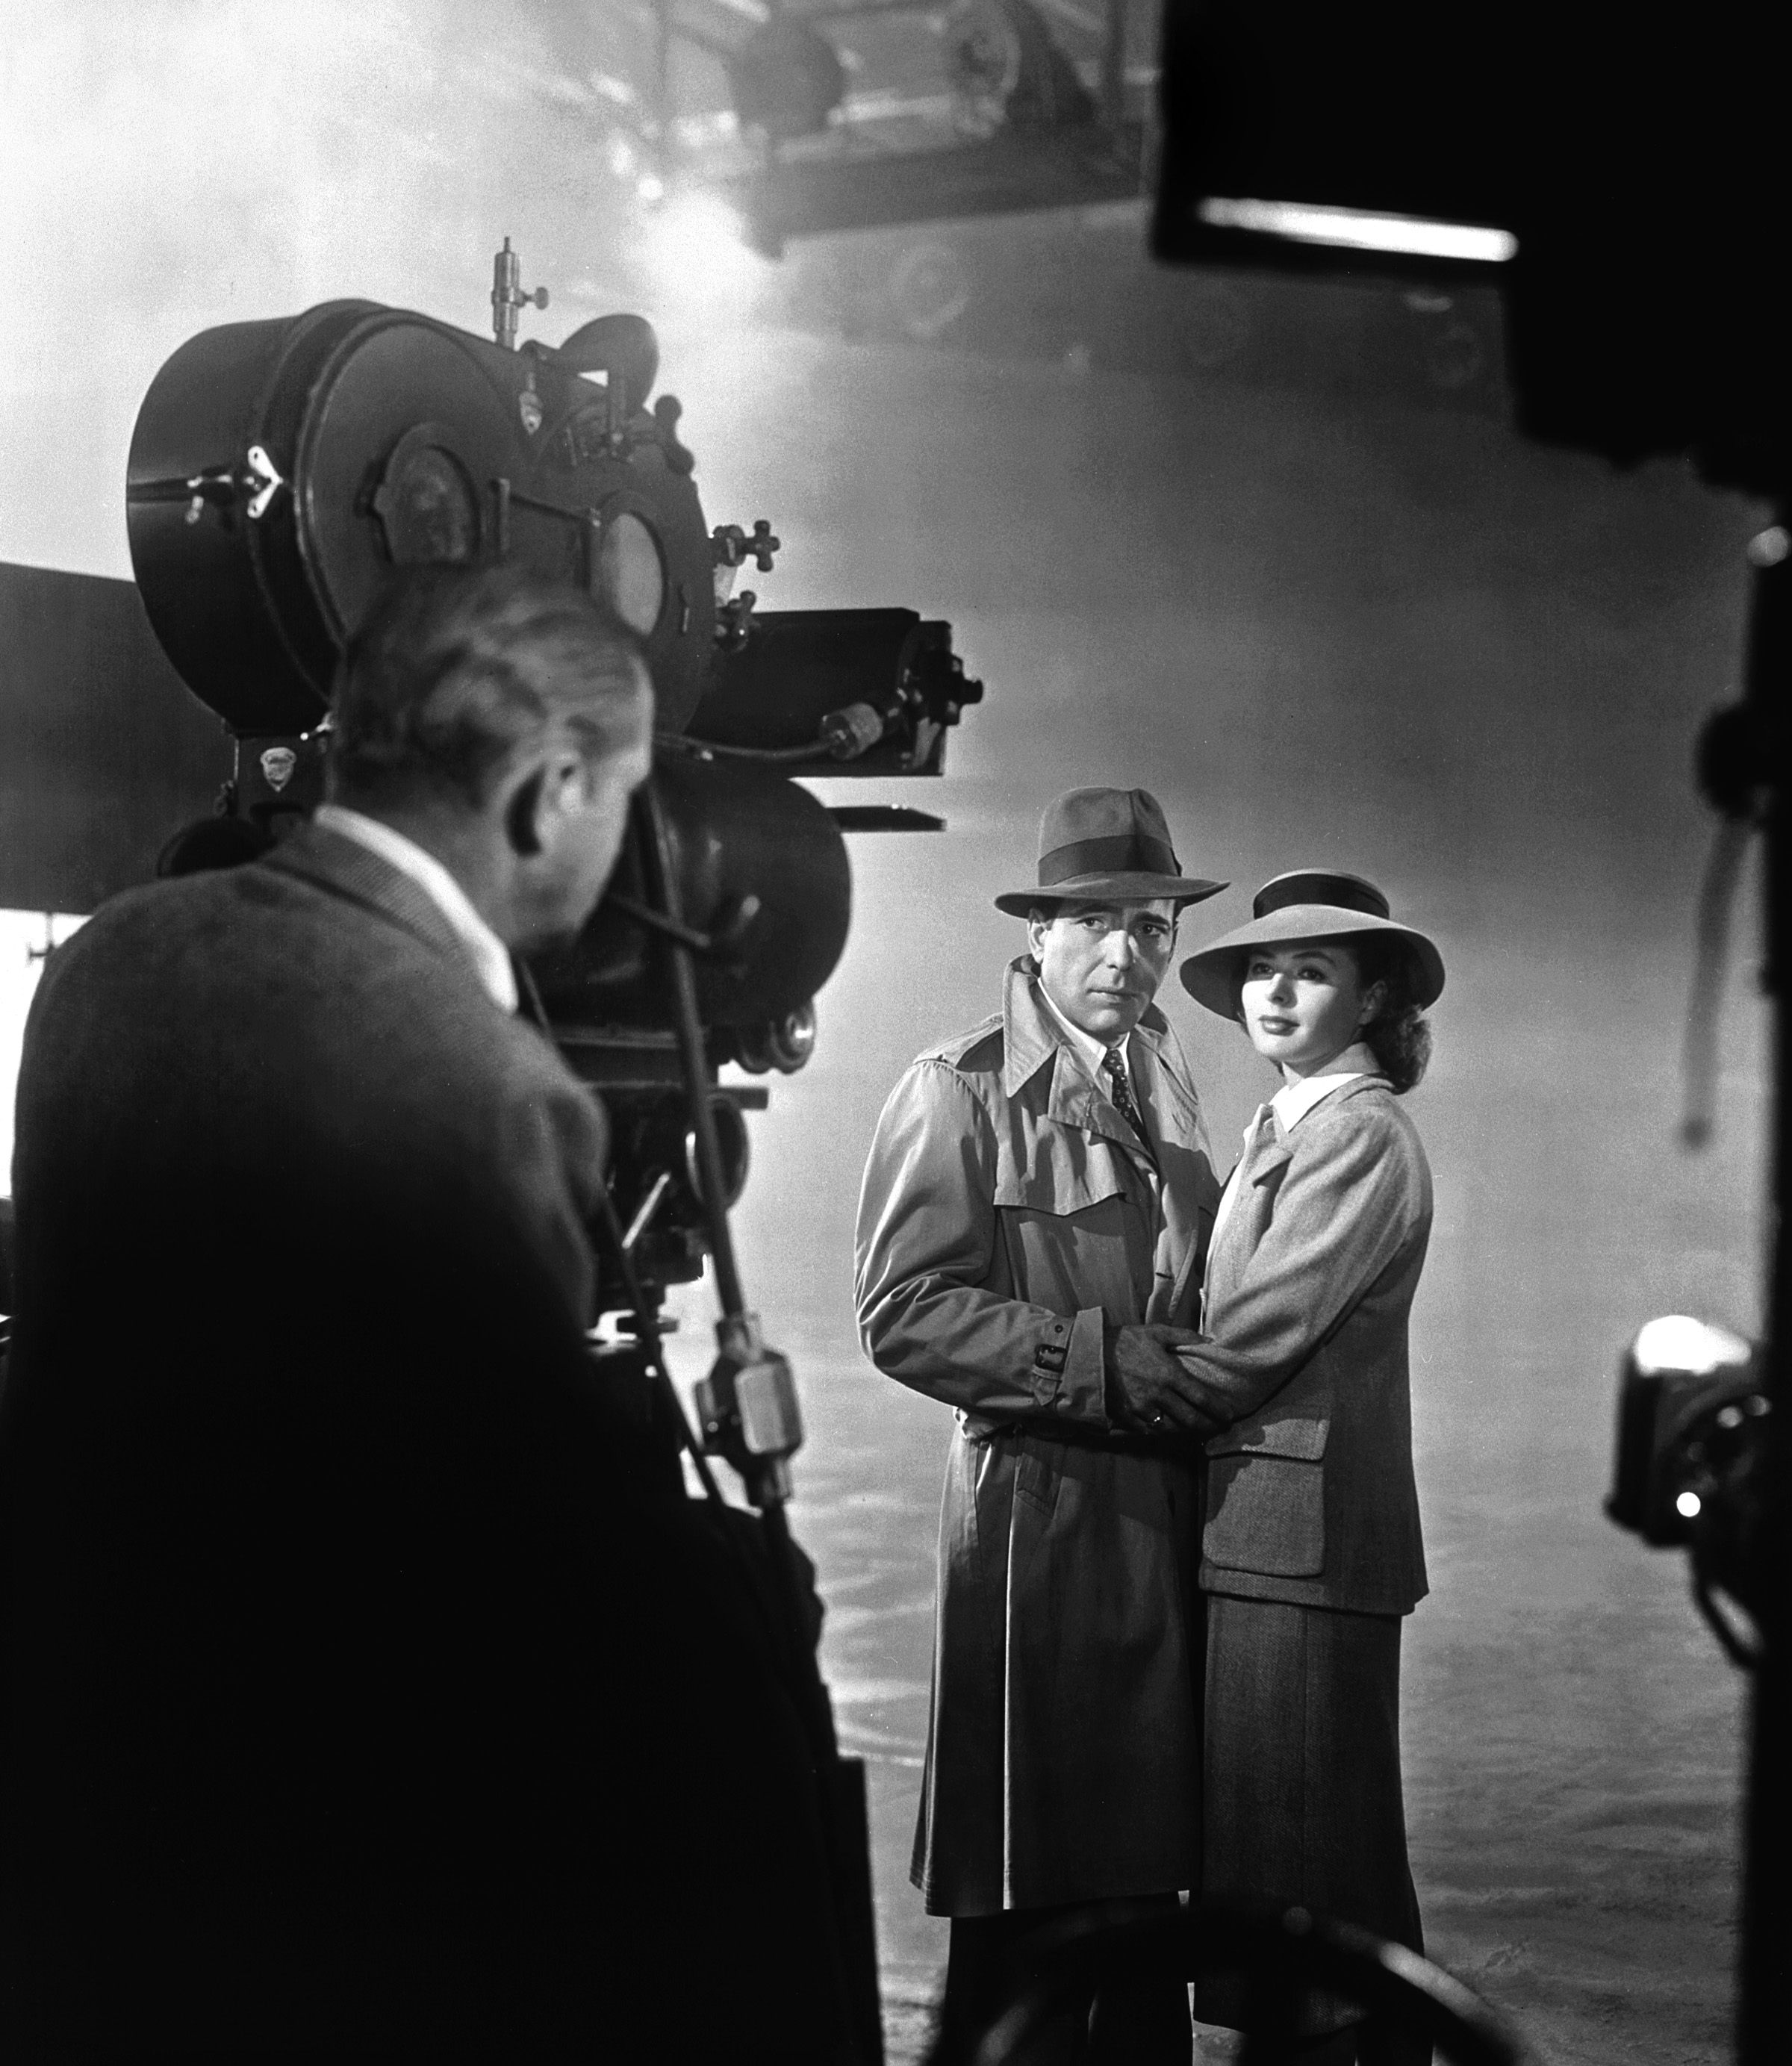 photo tournage coulisse cinema Casablanca 37 Photos sur des tournages de films #2